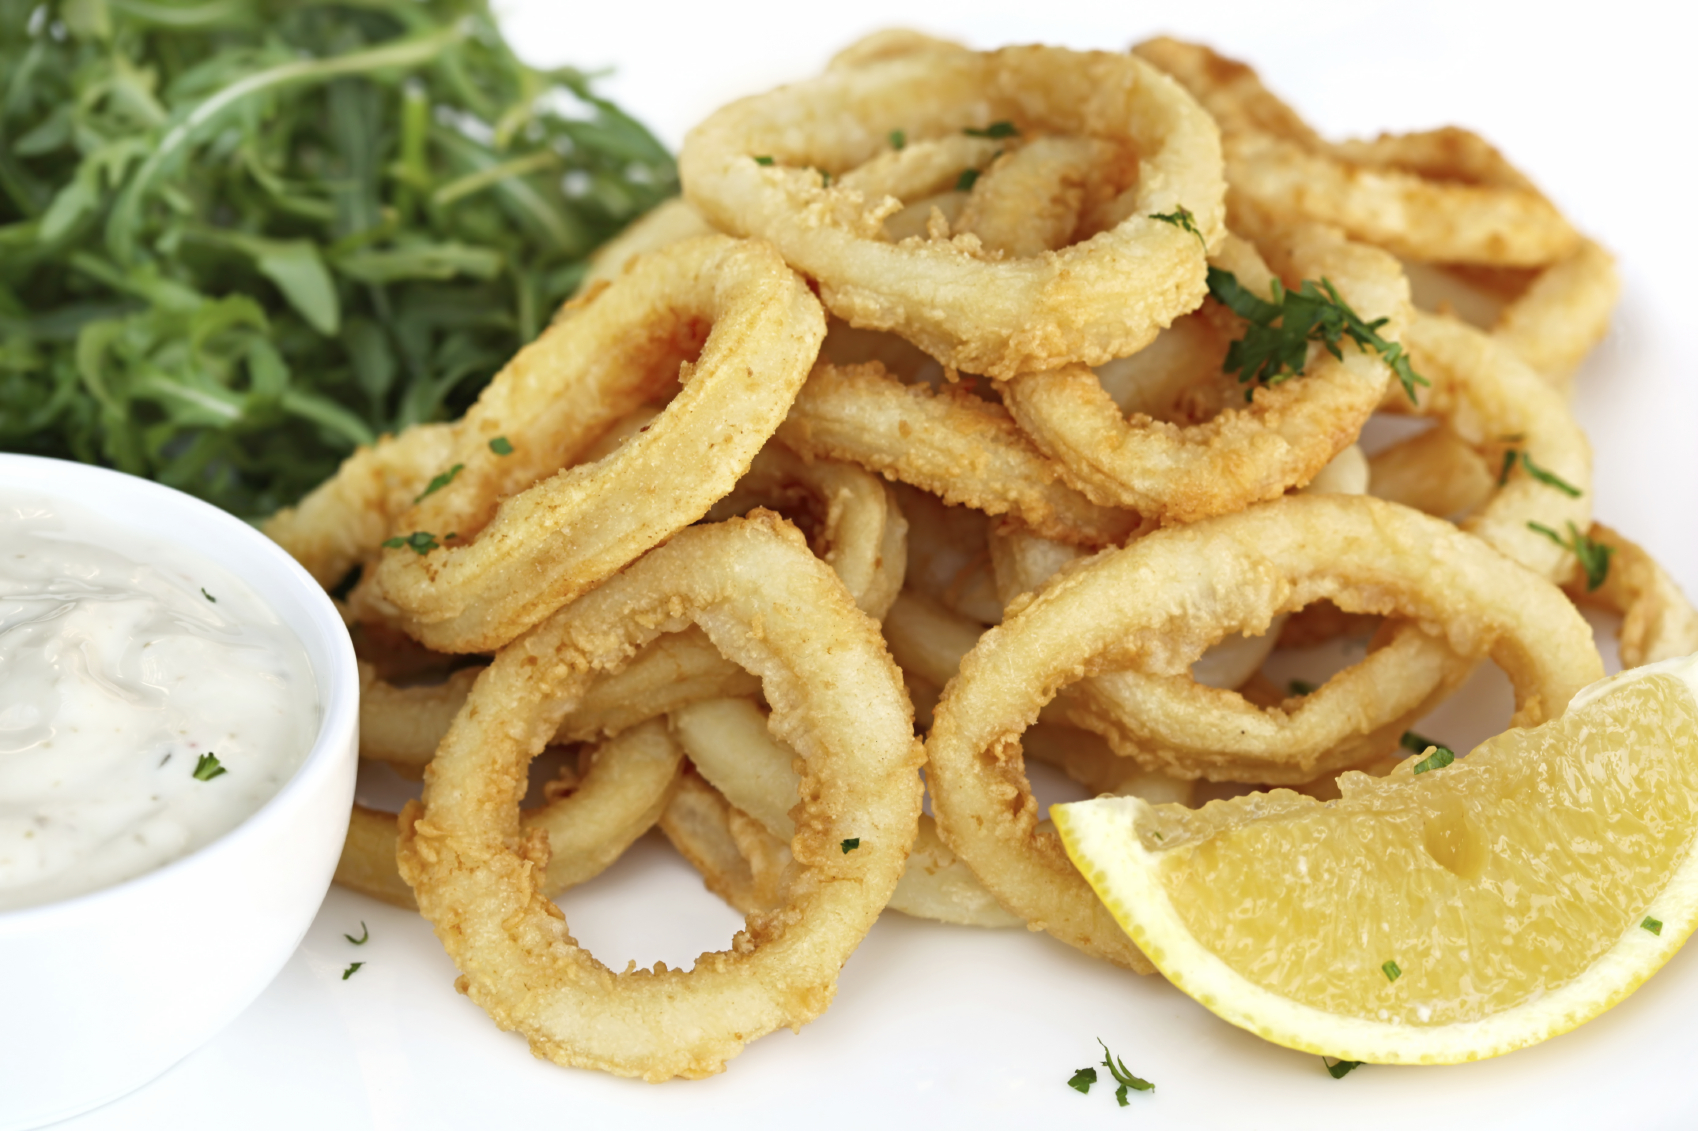 Calamari rings in beer batter